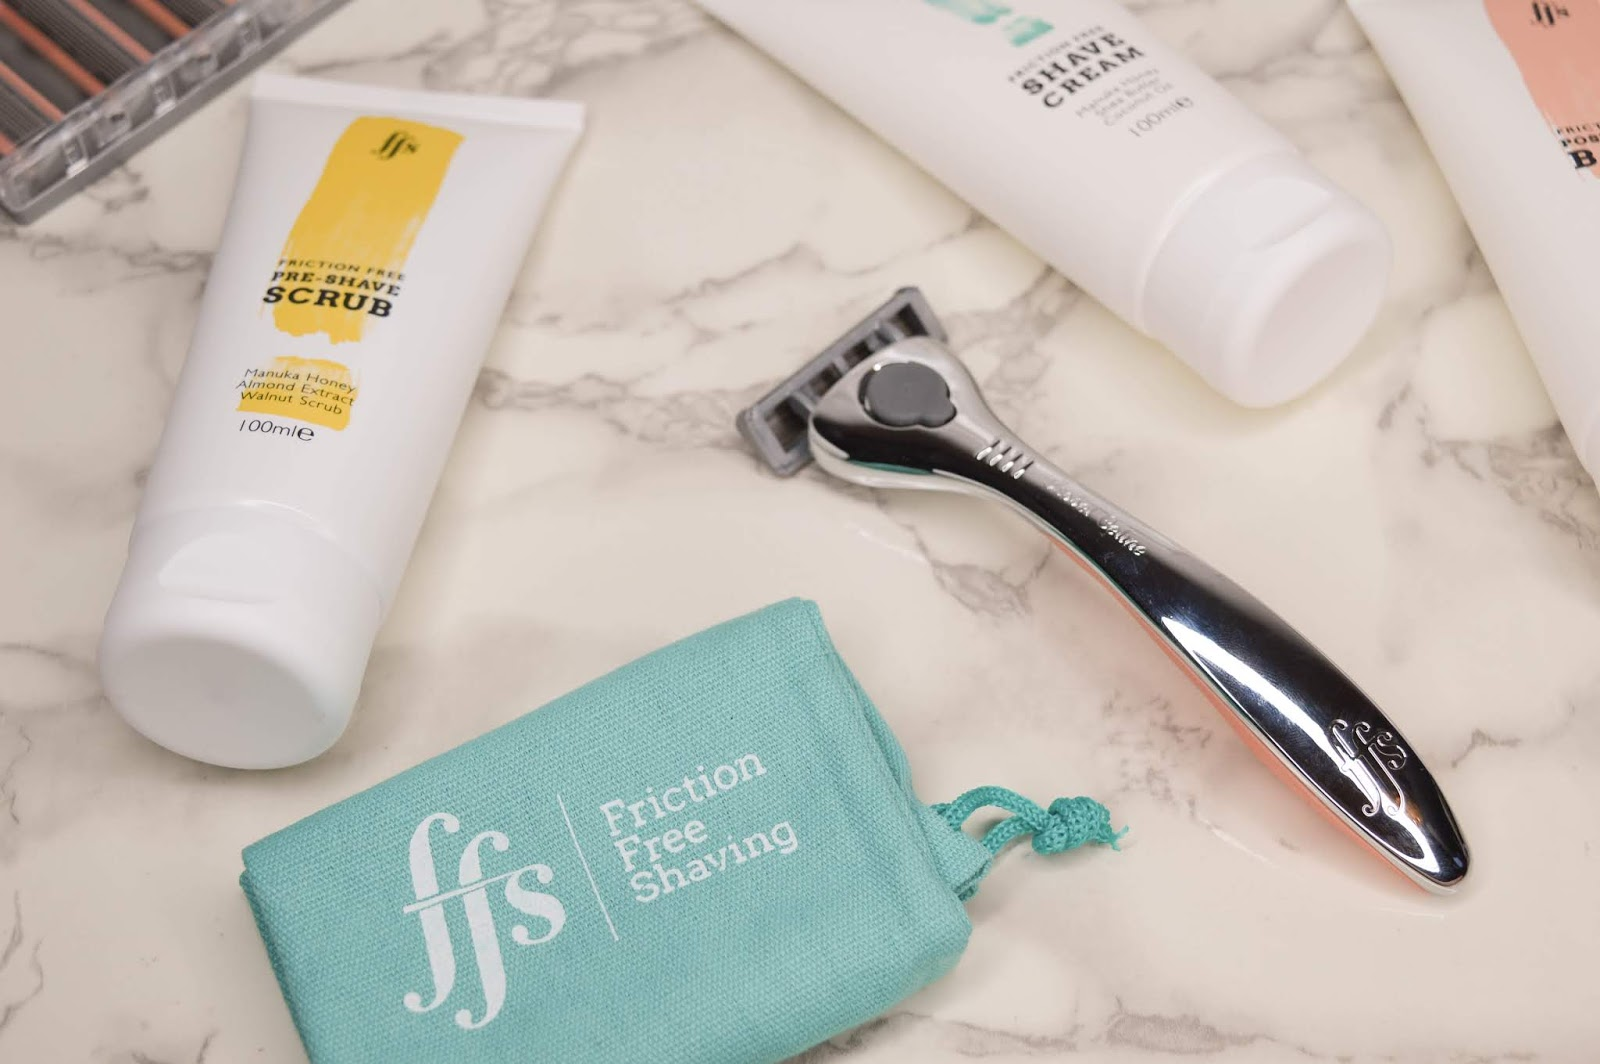 Friction Free Shaving